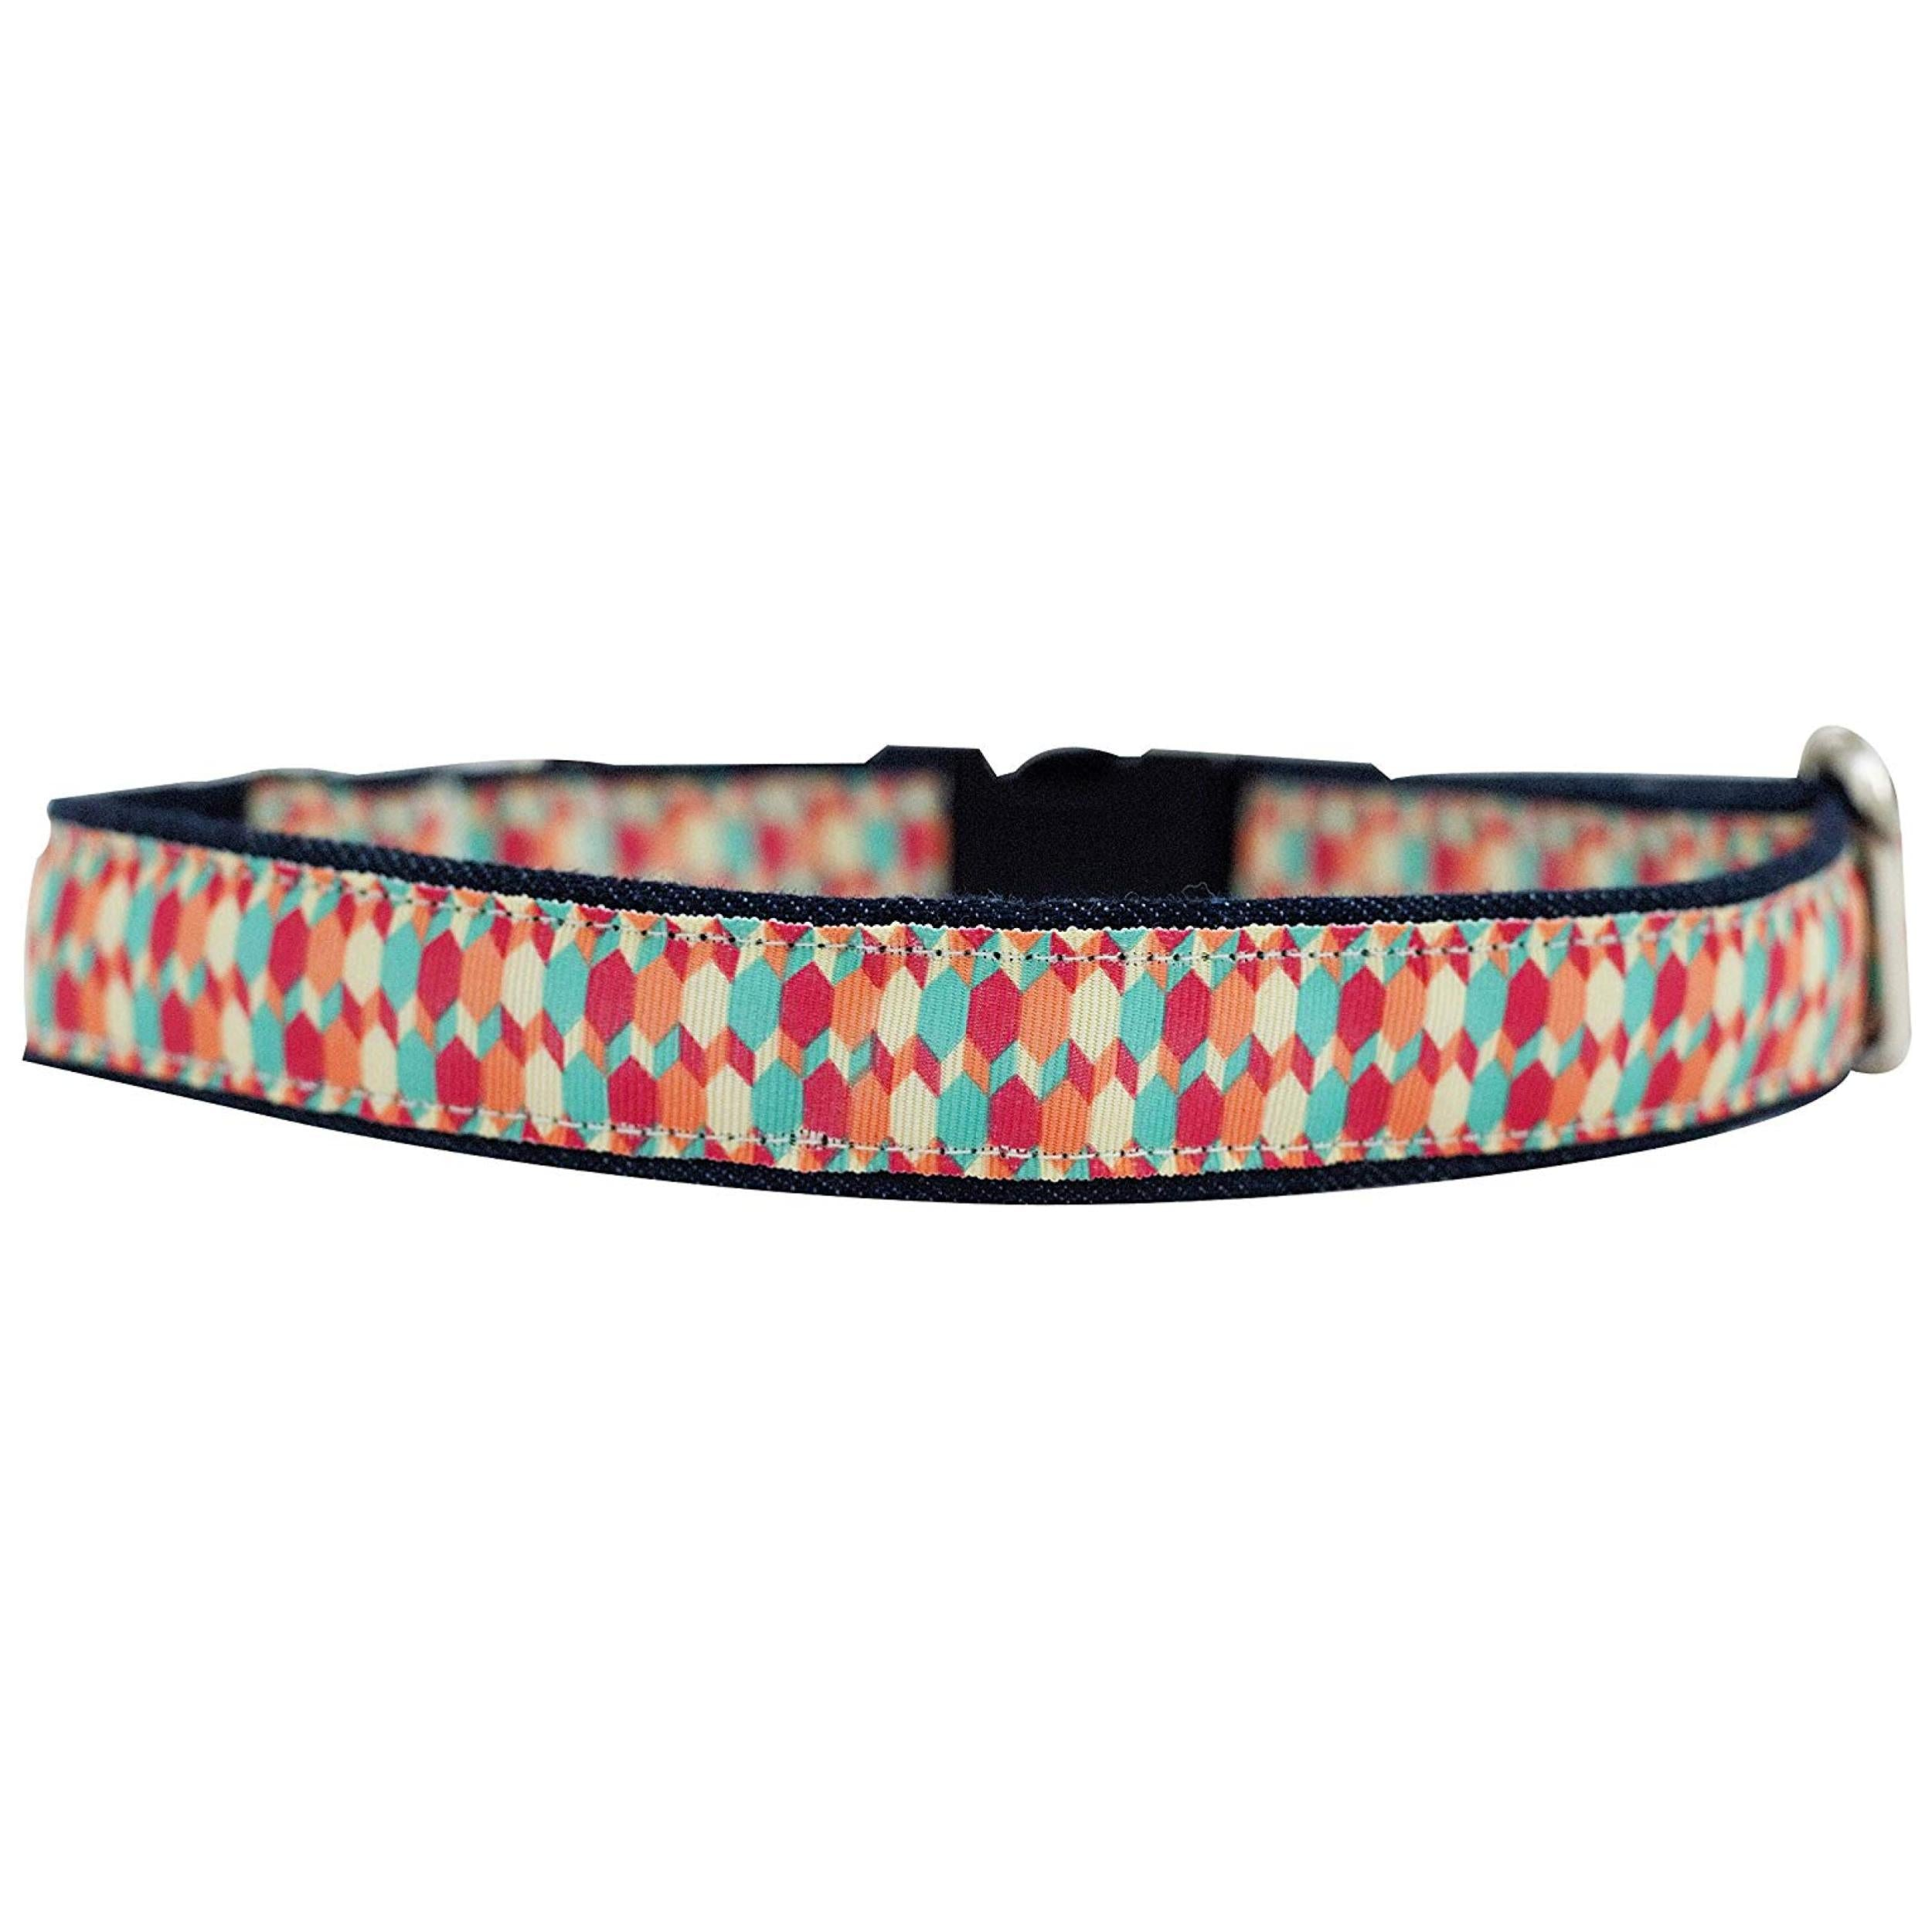 Candy Barrr Collar & Leash Set For Dogs - Poochles